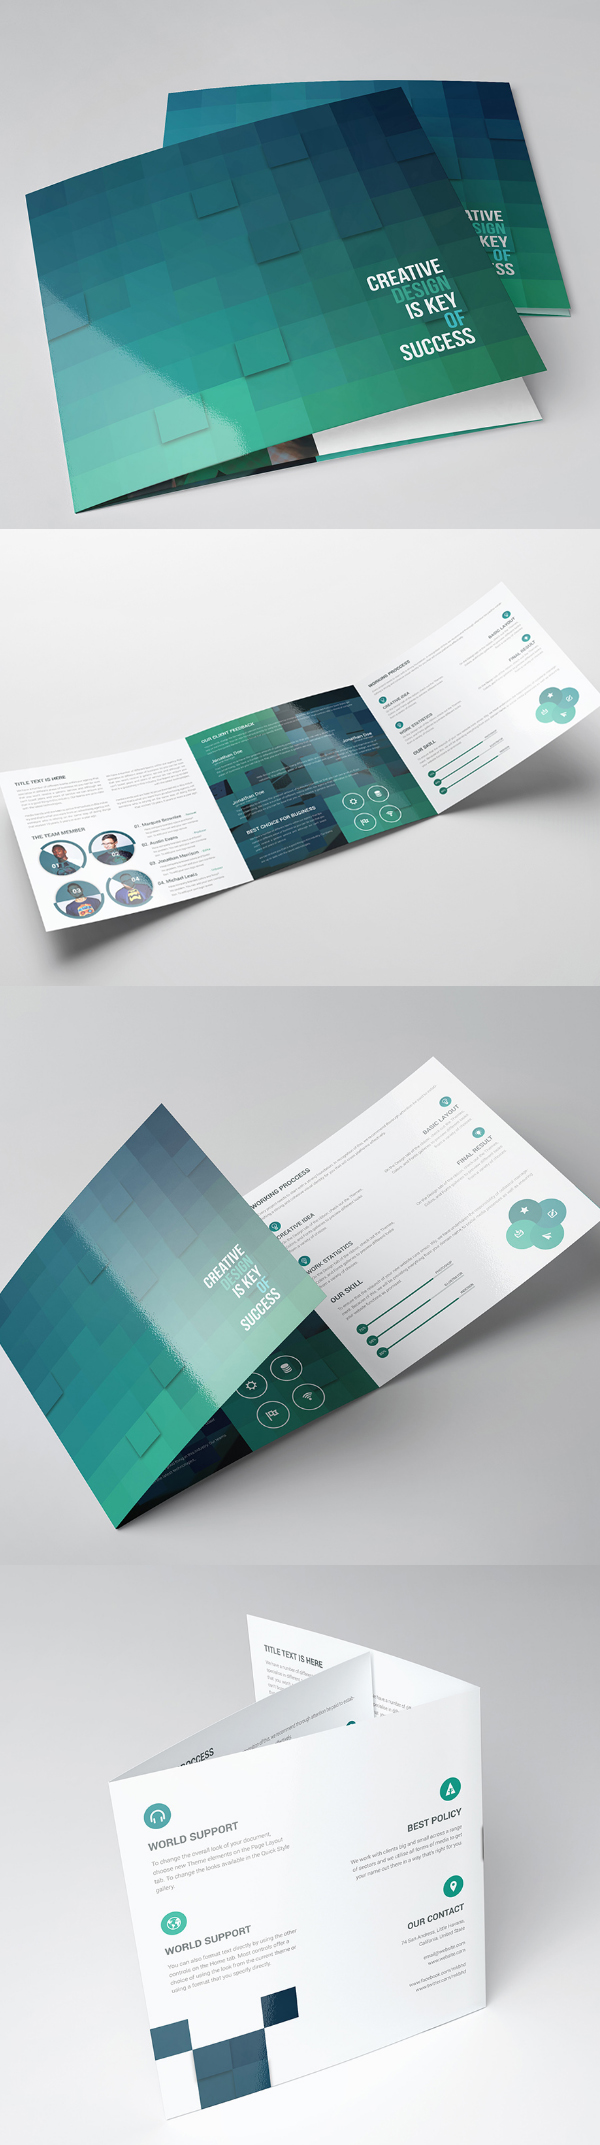 graphic design brochure new catalog brochure design templates design graphic